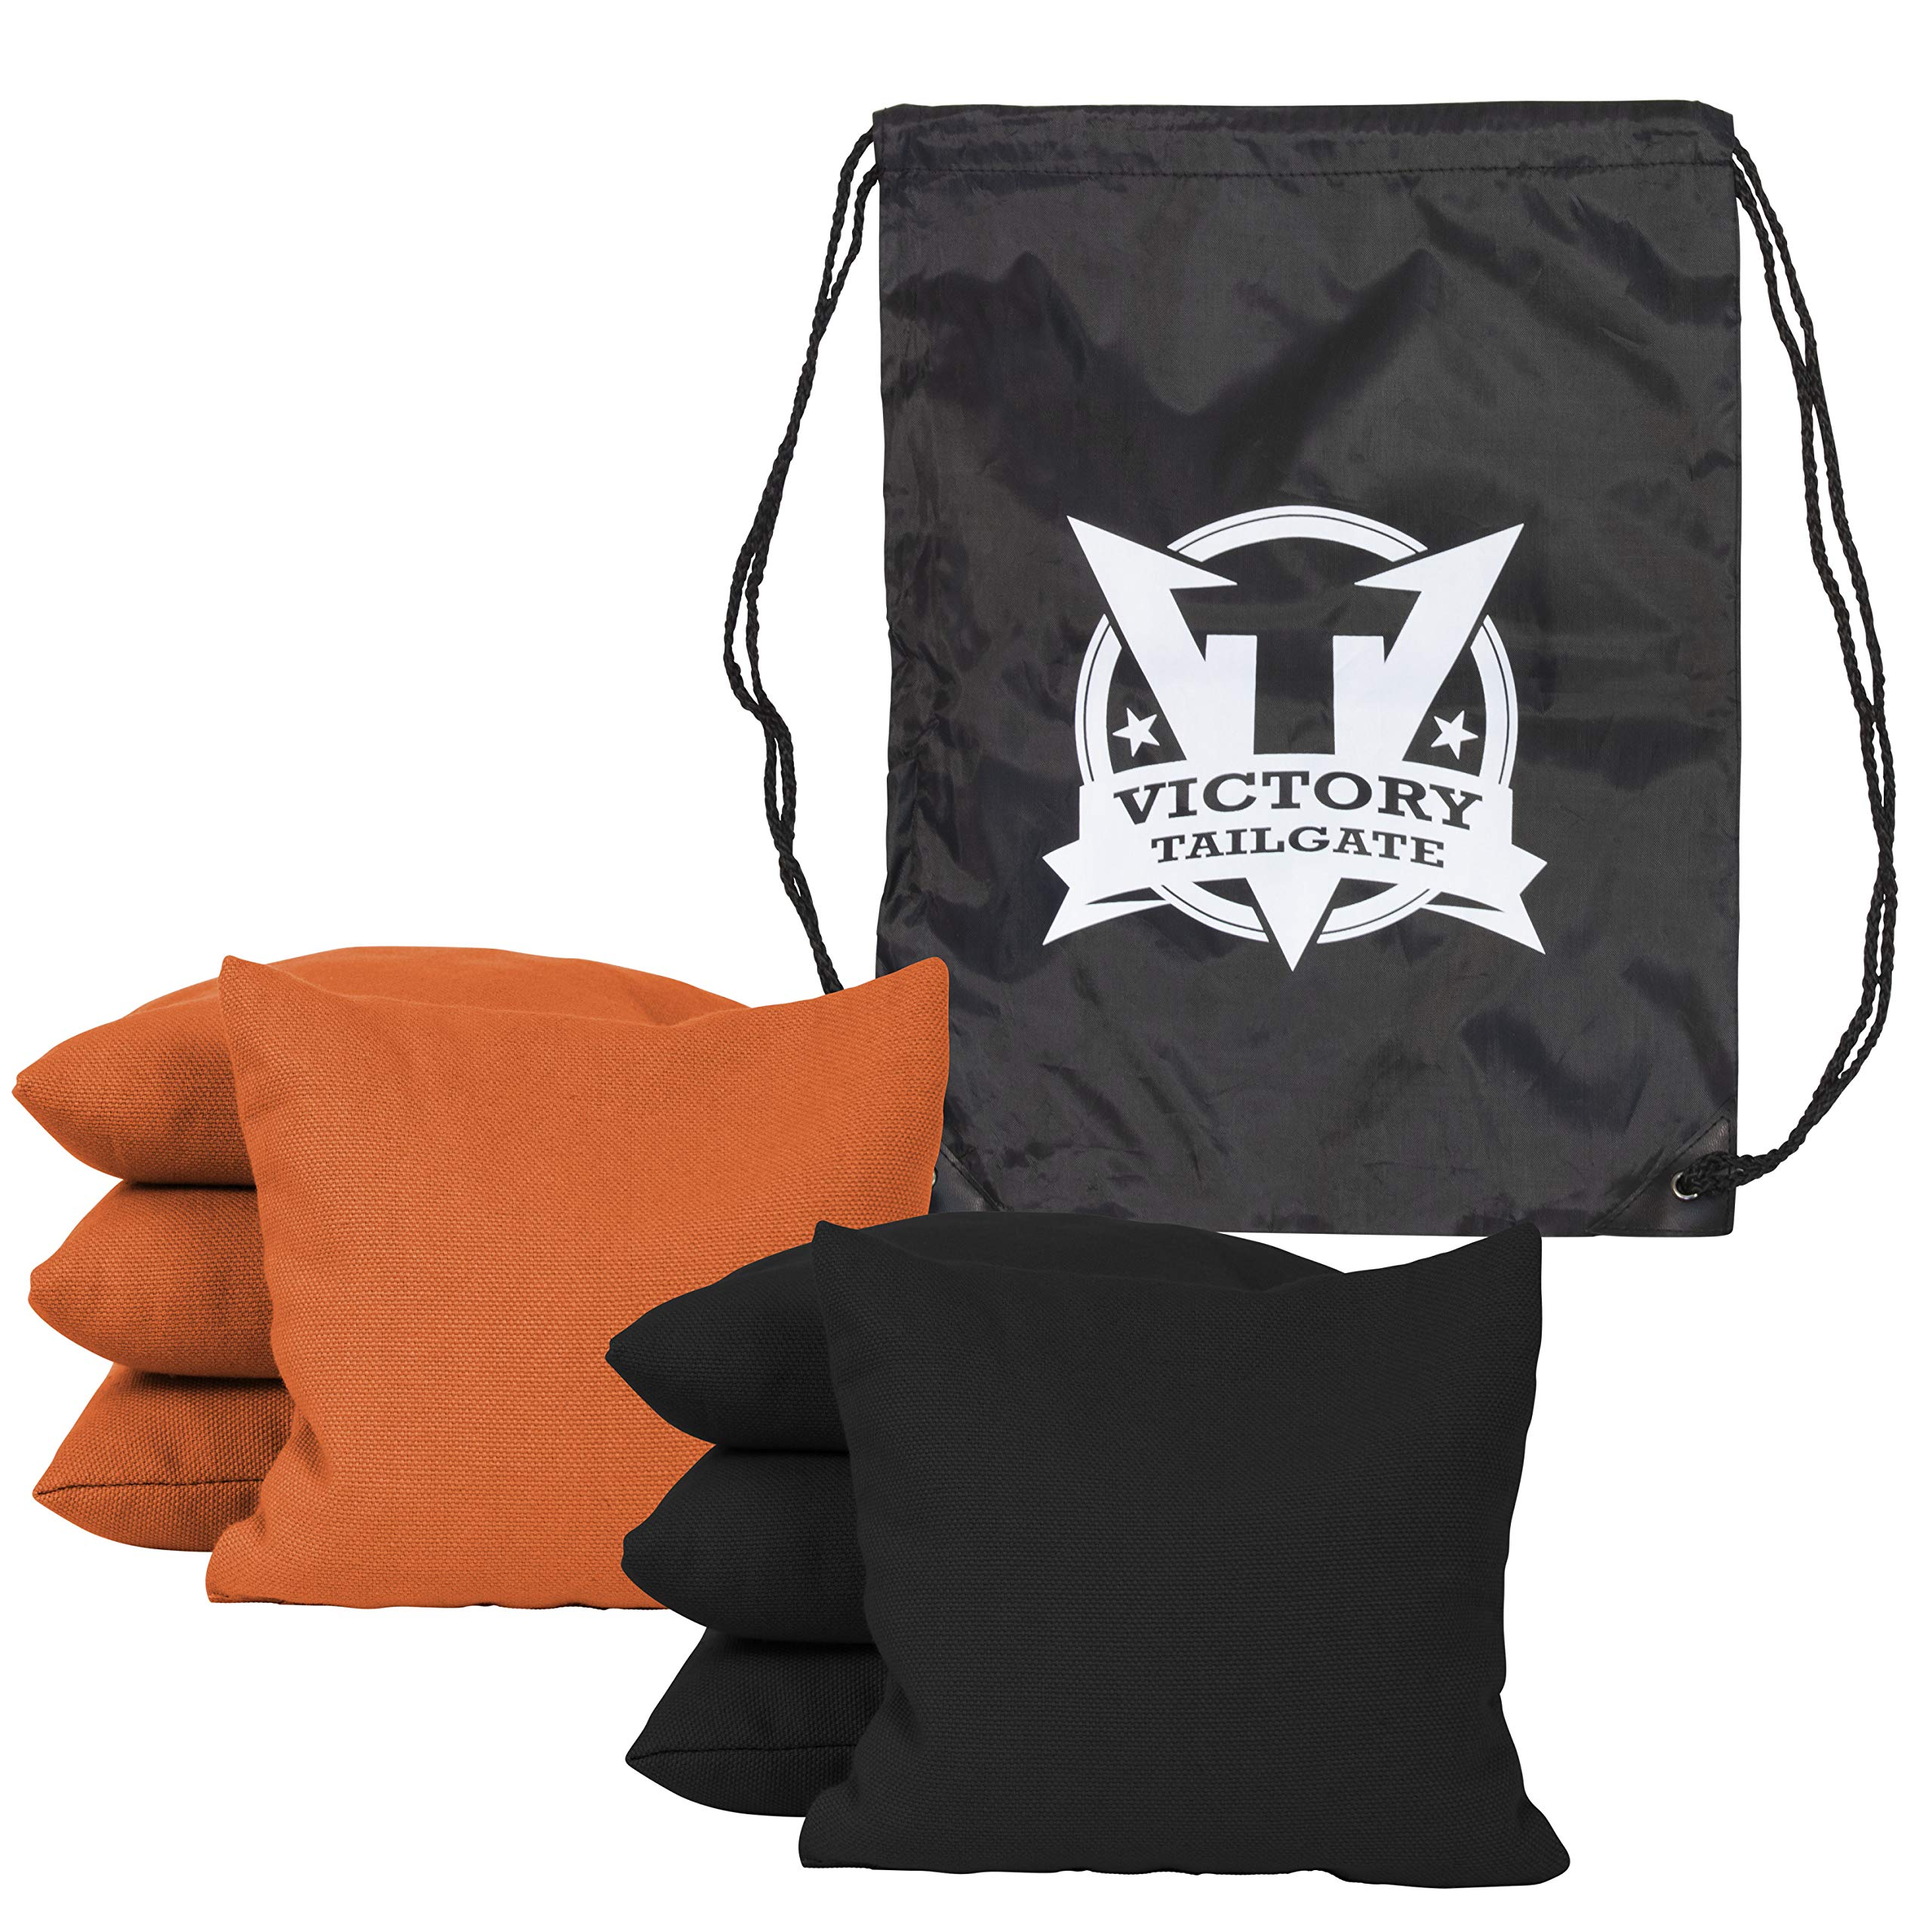 Victory Tailgate 8 Colored Corn Filled Regulation Cornhole Bags with Drawstring Pack (4 Black, 4 Orange)